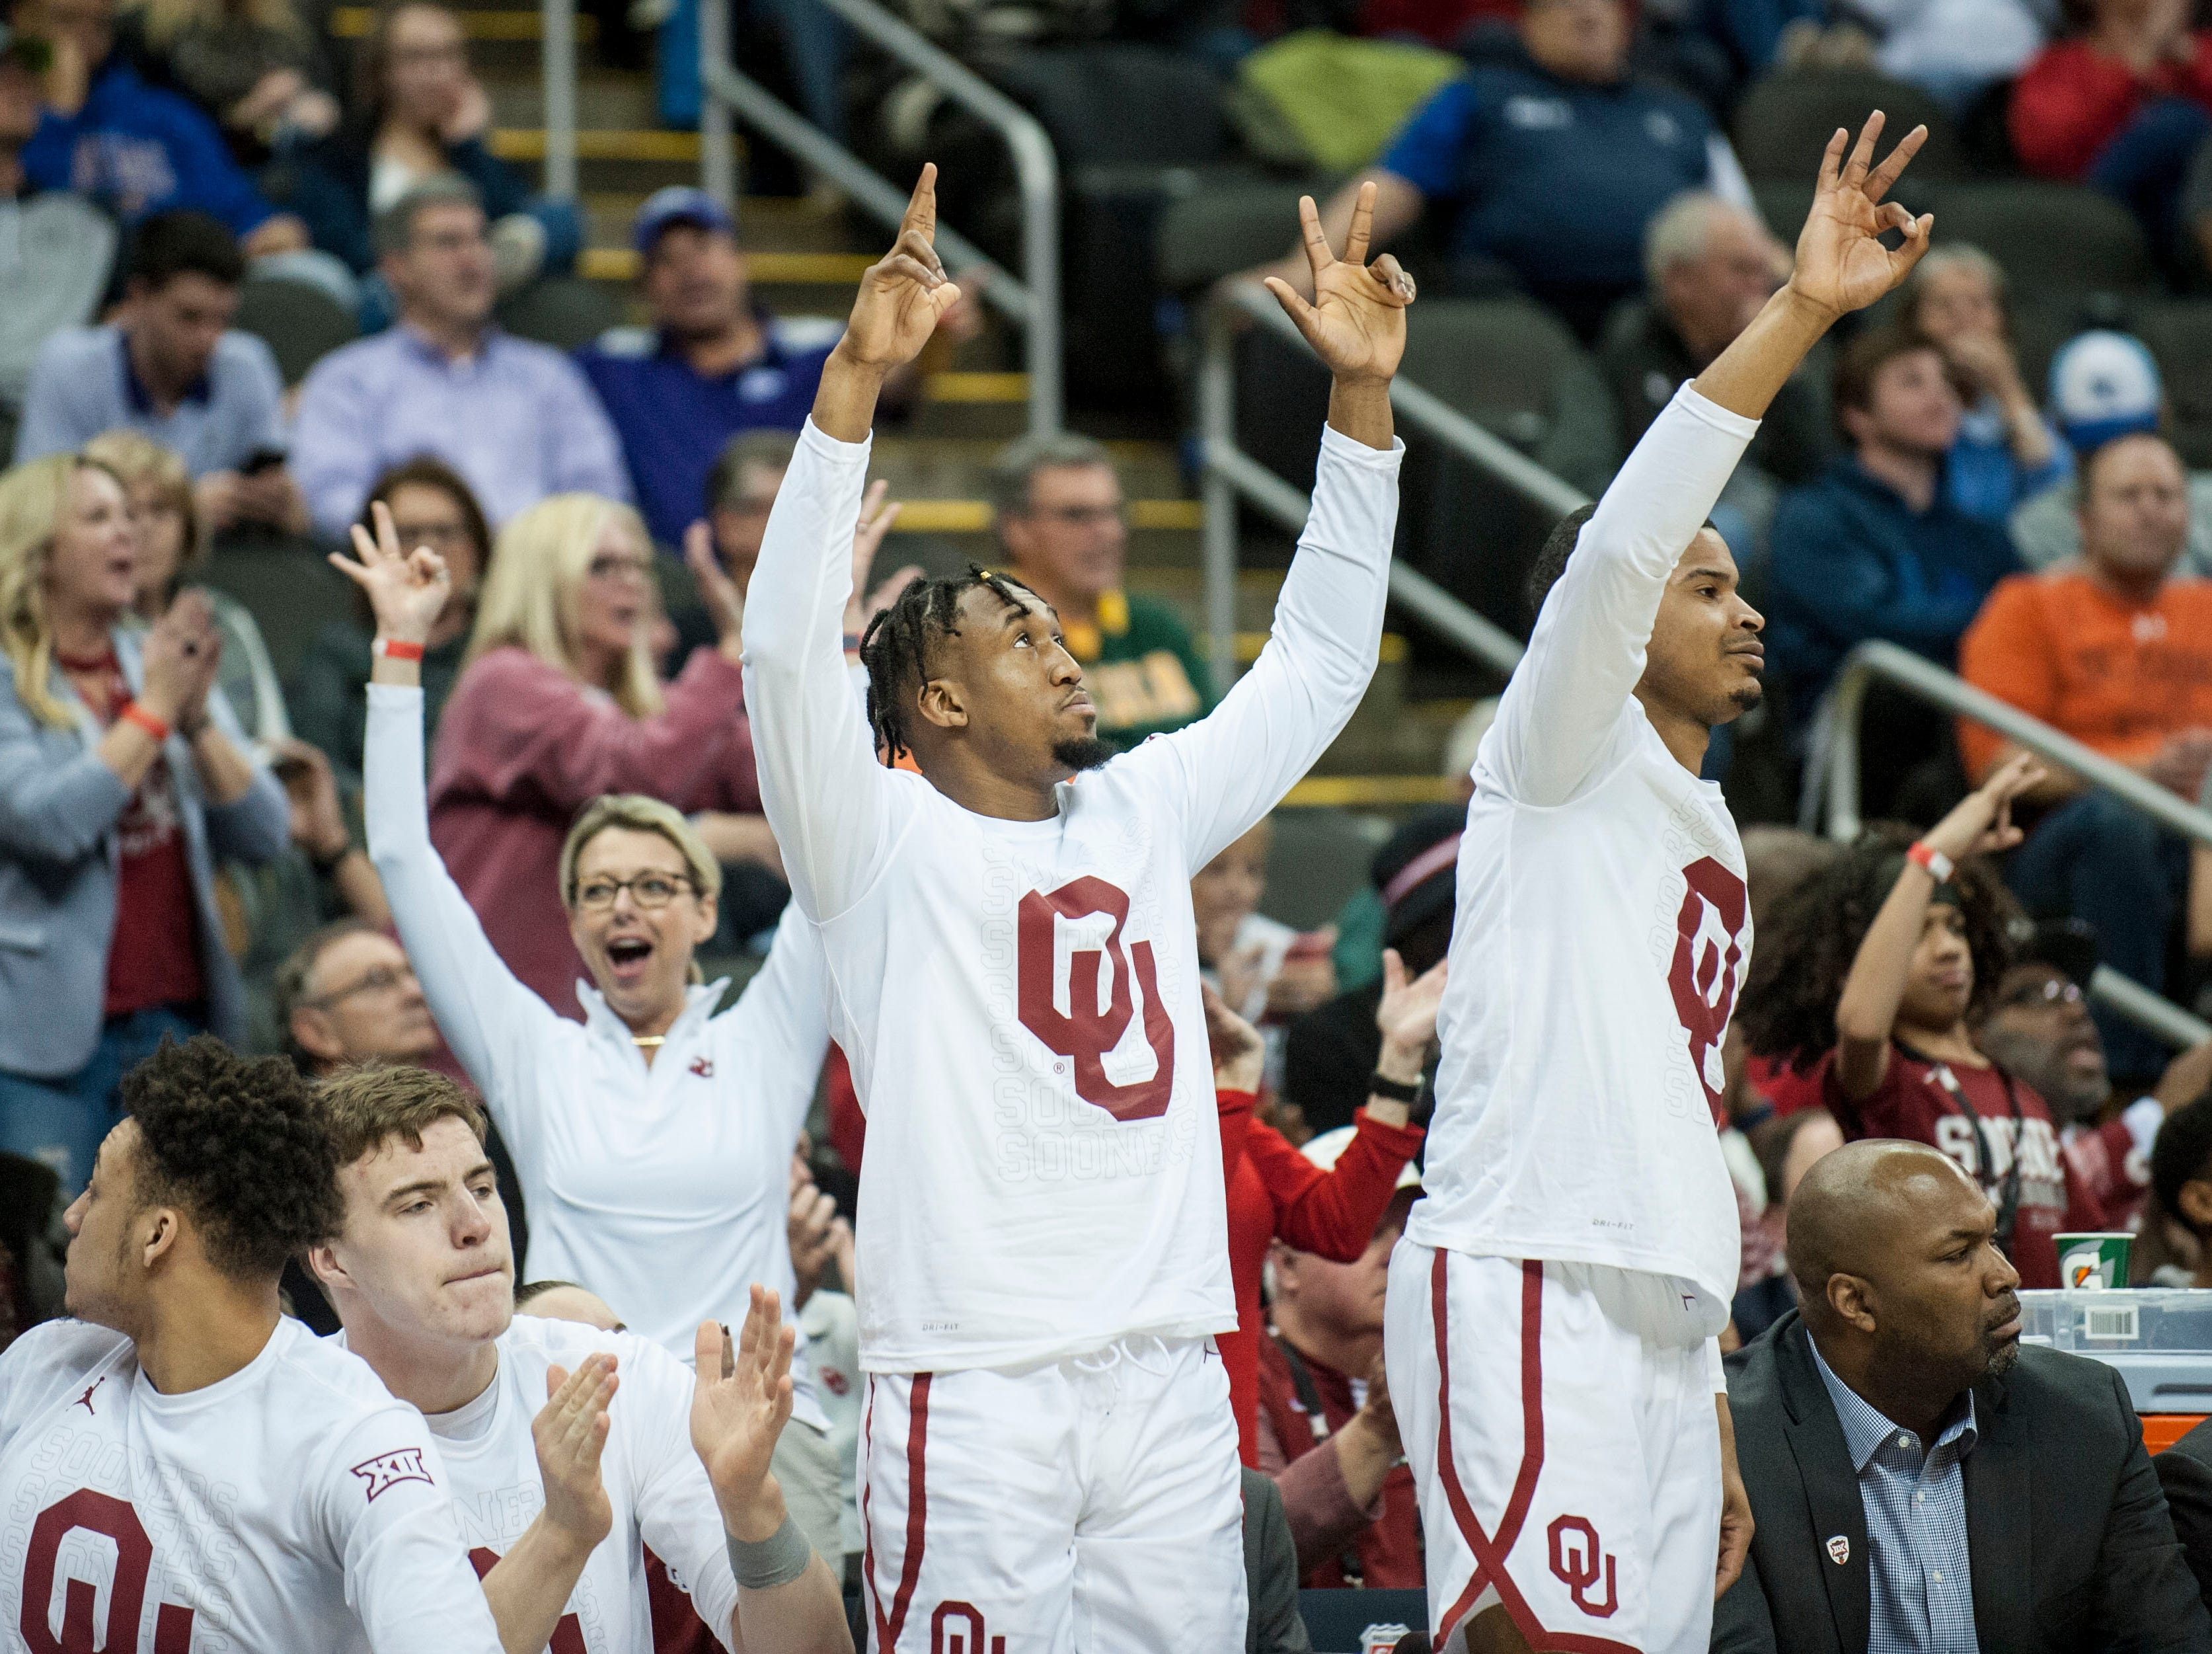 Oklahoma (19-13), No. 9 seed in South, at-large bid out of Big 12 Conference